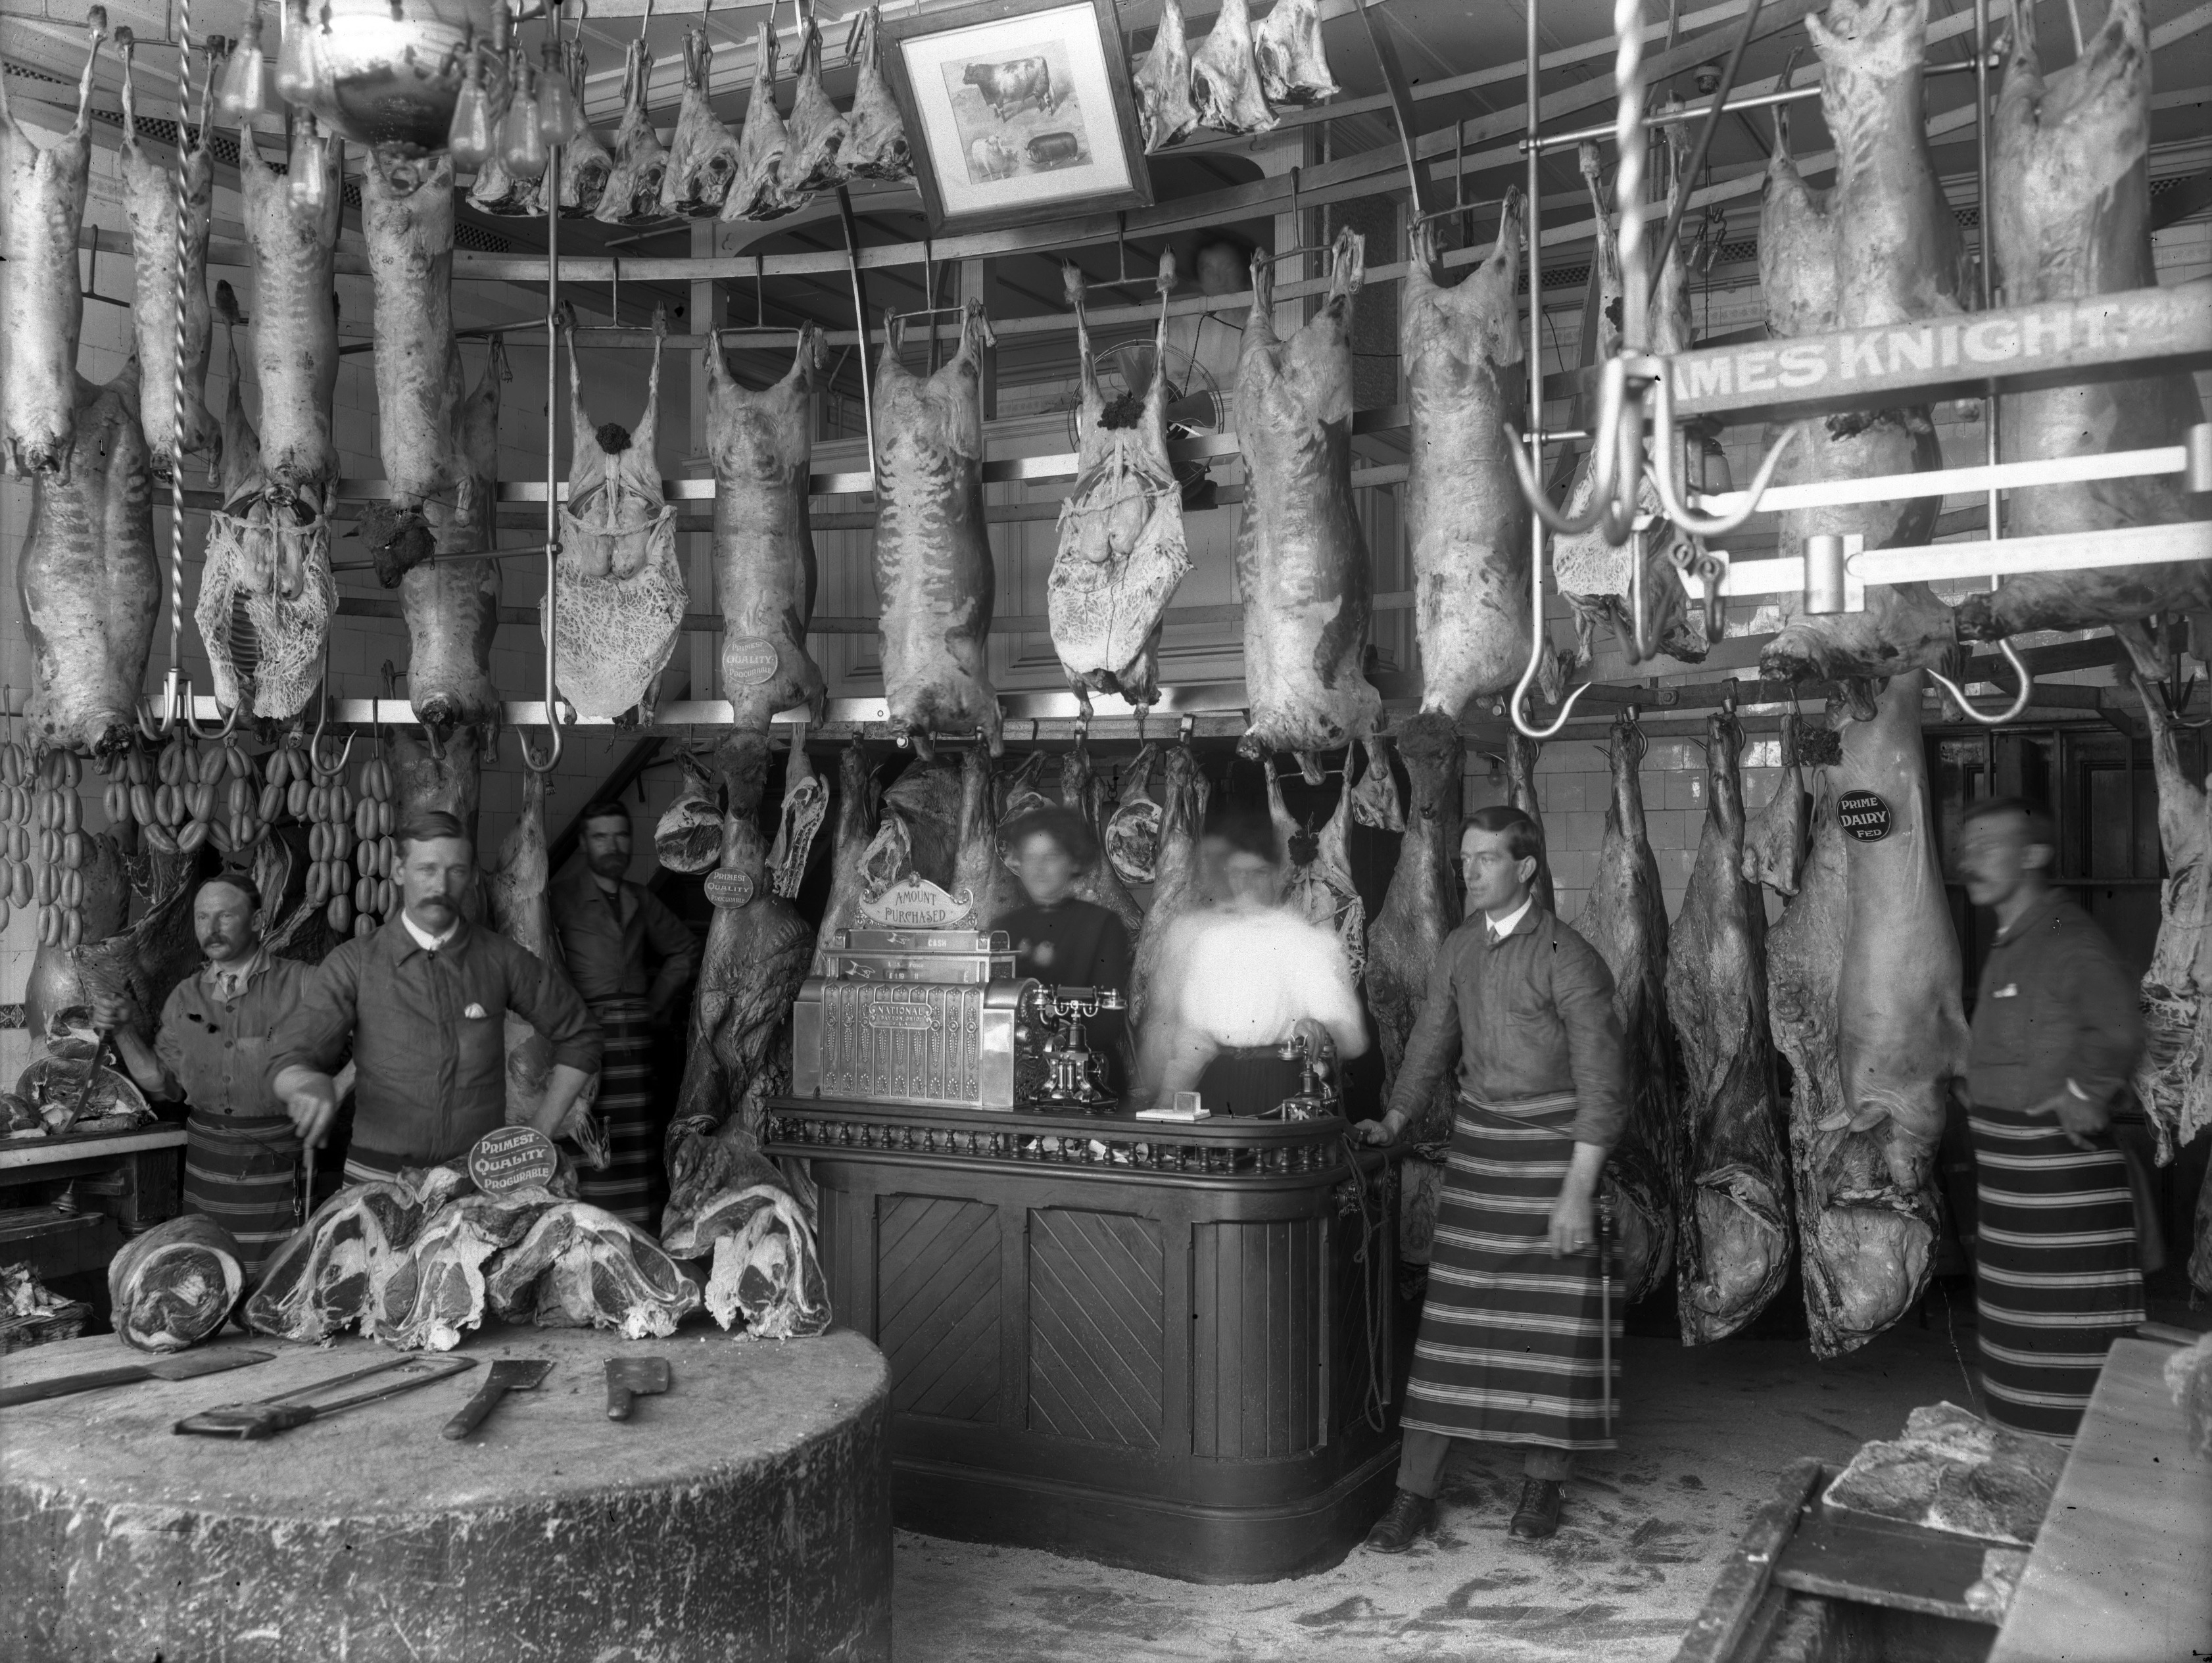 Knight's Butchers, High Street, Christchurch. Photo from Knight Family Collection and published on http://www.highstreetstories.co.nz